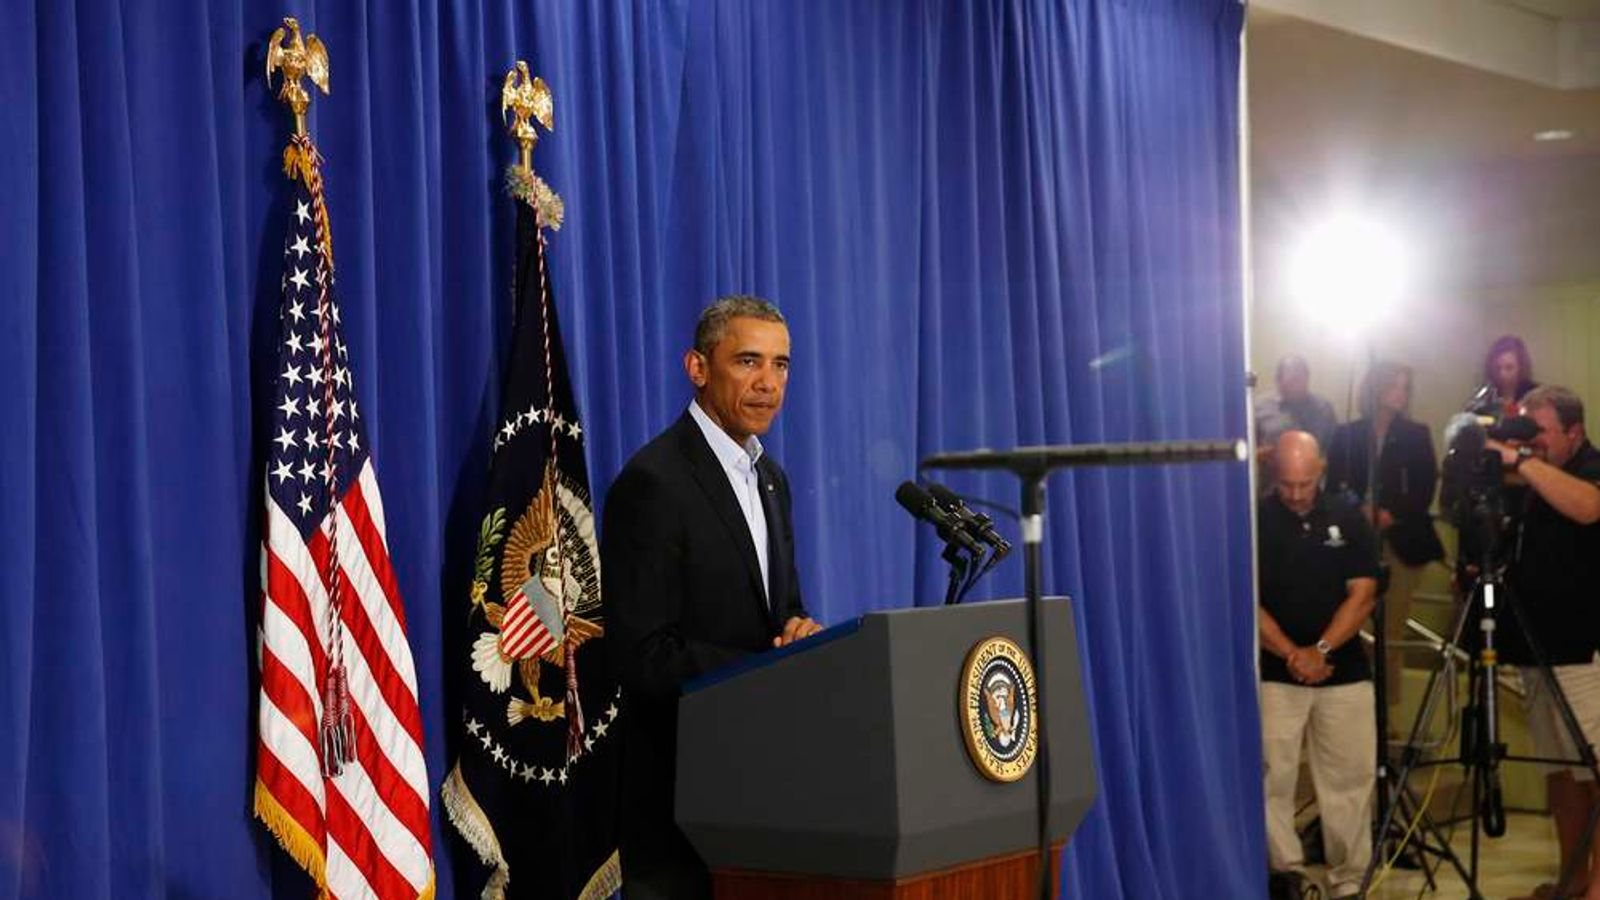 Barack Obama delivers a statement from Martha's Vineyard, Massachusetts